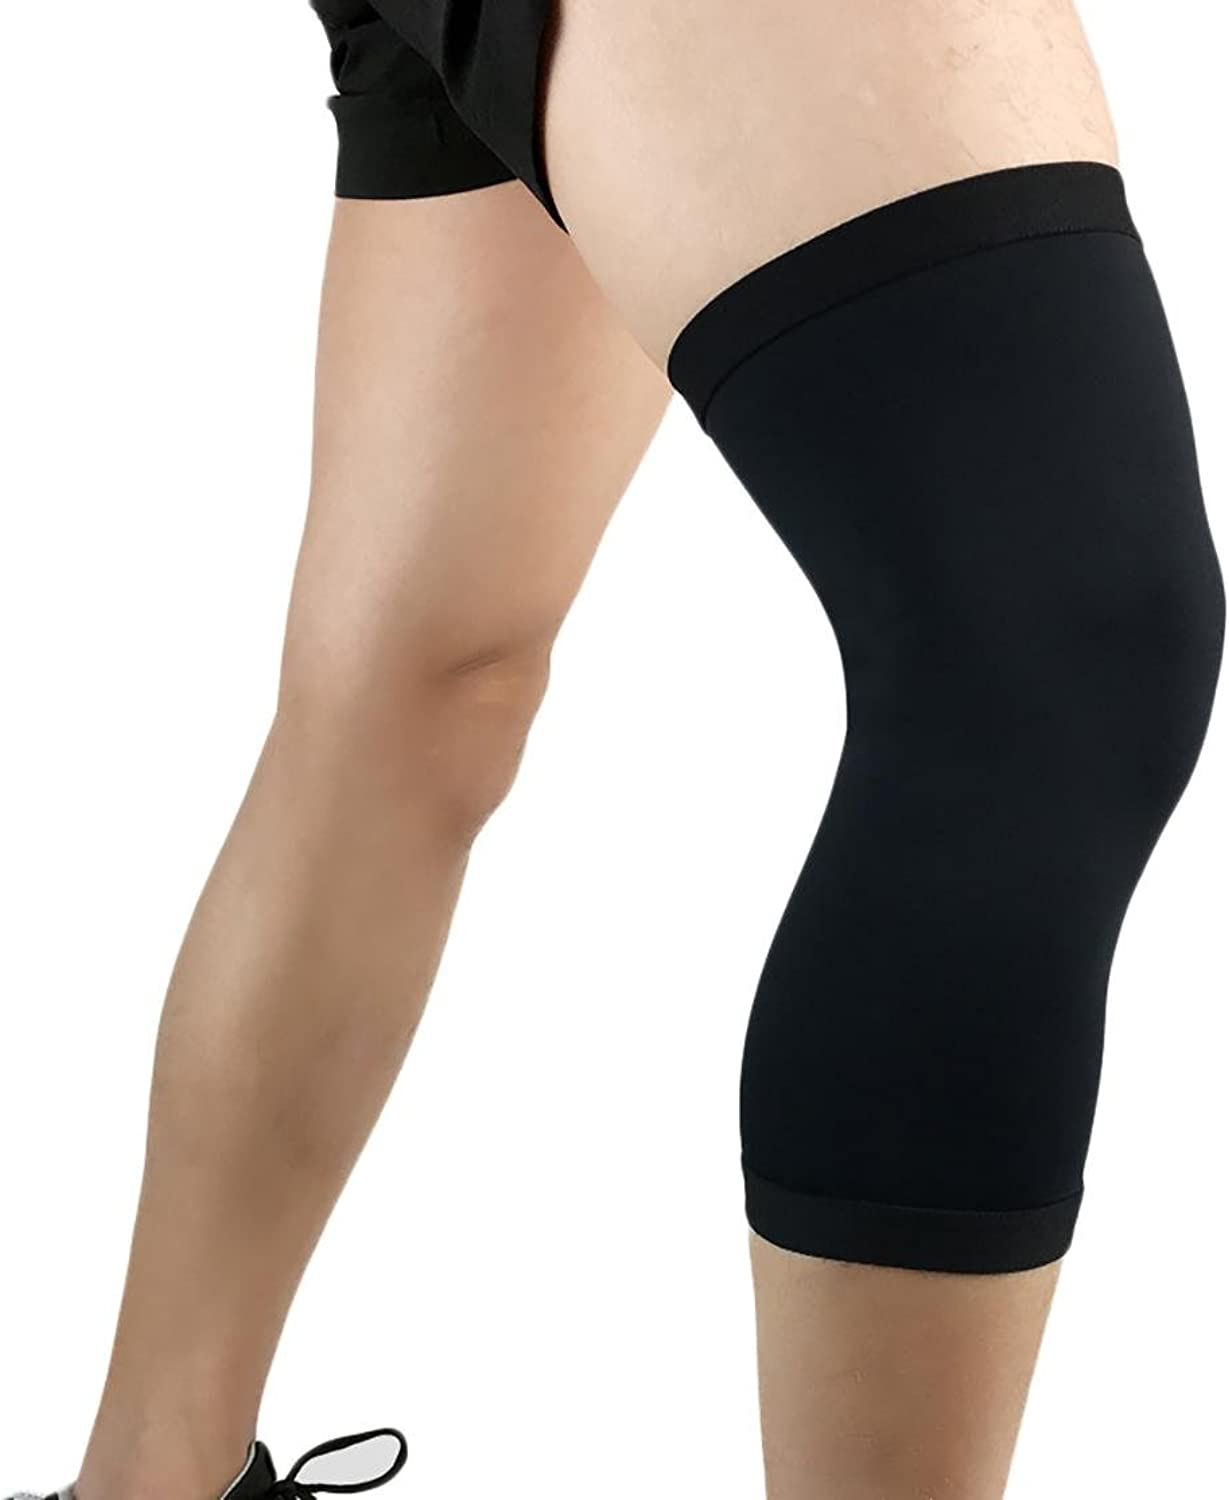 Sports knee pads basketball breathable compression tights outdoor run fitness riding predective supplies m   l   xl (A pair)